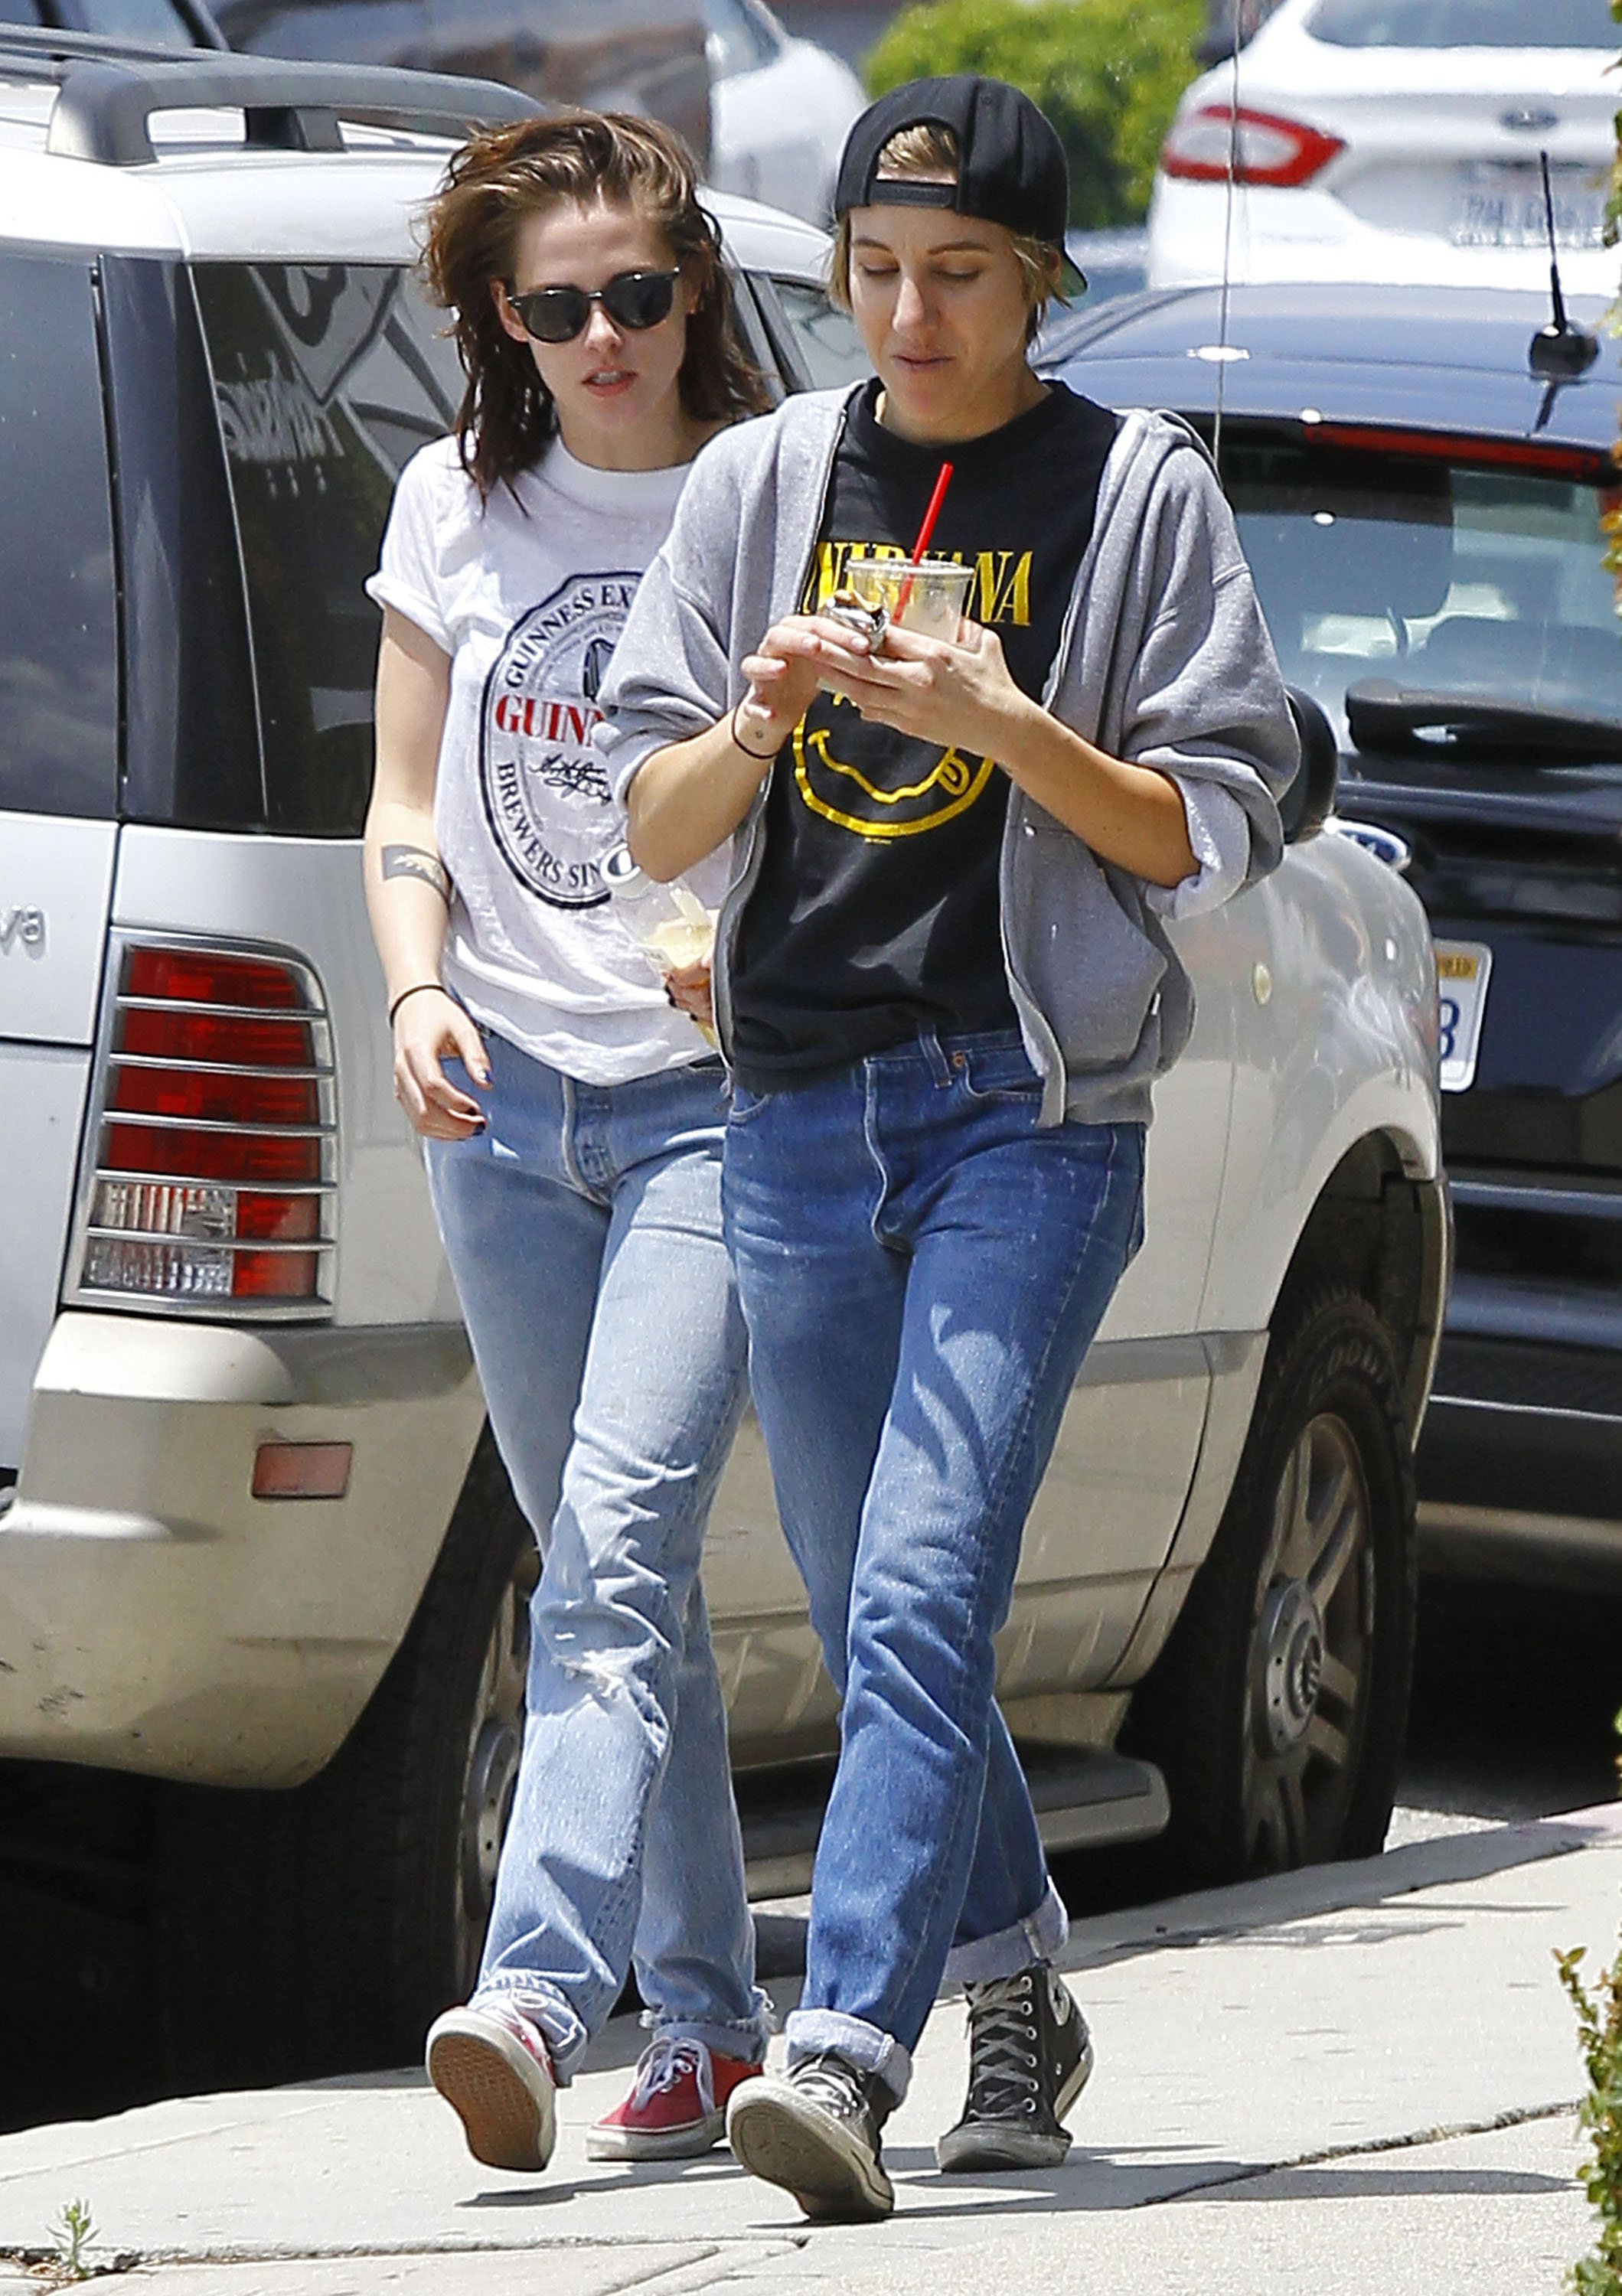 kristen dating alicia Kristen stewart was recently spotted checking out some butt while curbing her caffeine craving at fix in los feliz, california, with girlfriend, alicia cargile.